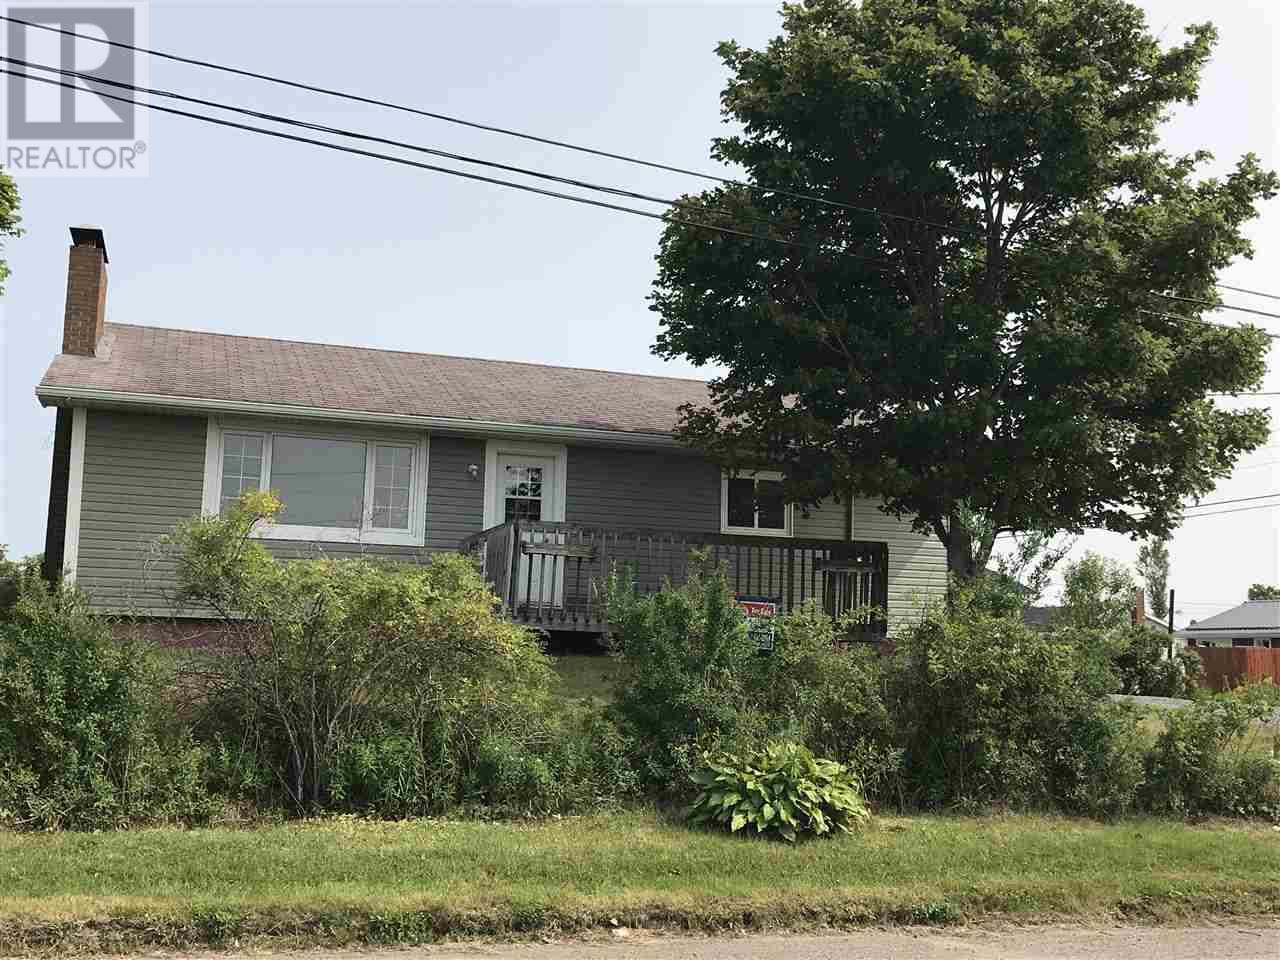 Removed: 1 Summit Drive, Port Hawkesbury, NS - Removed on 2019-06-18 06:00:27